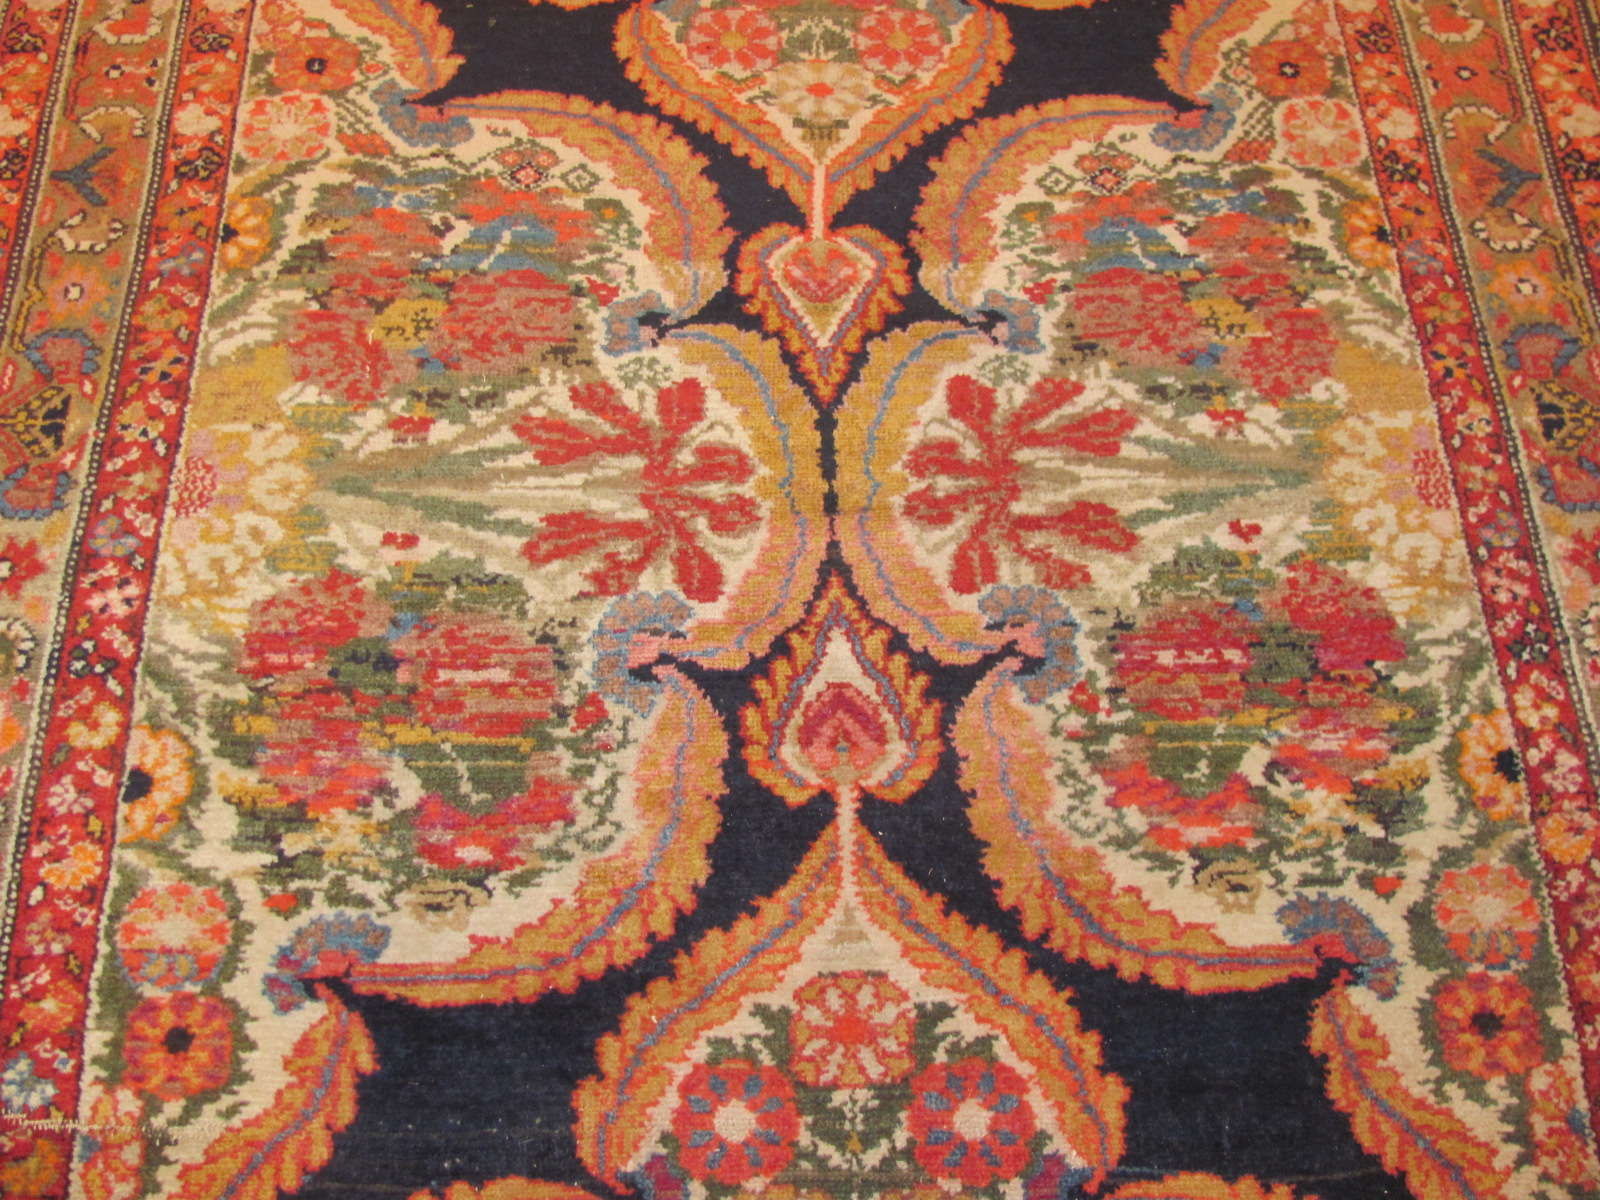 24430 antique persian malayer gallery runner 4,9x11,9 -2